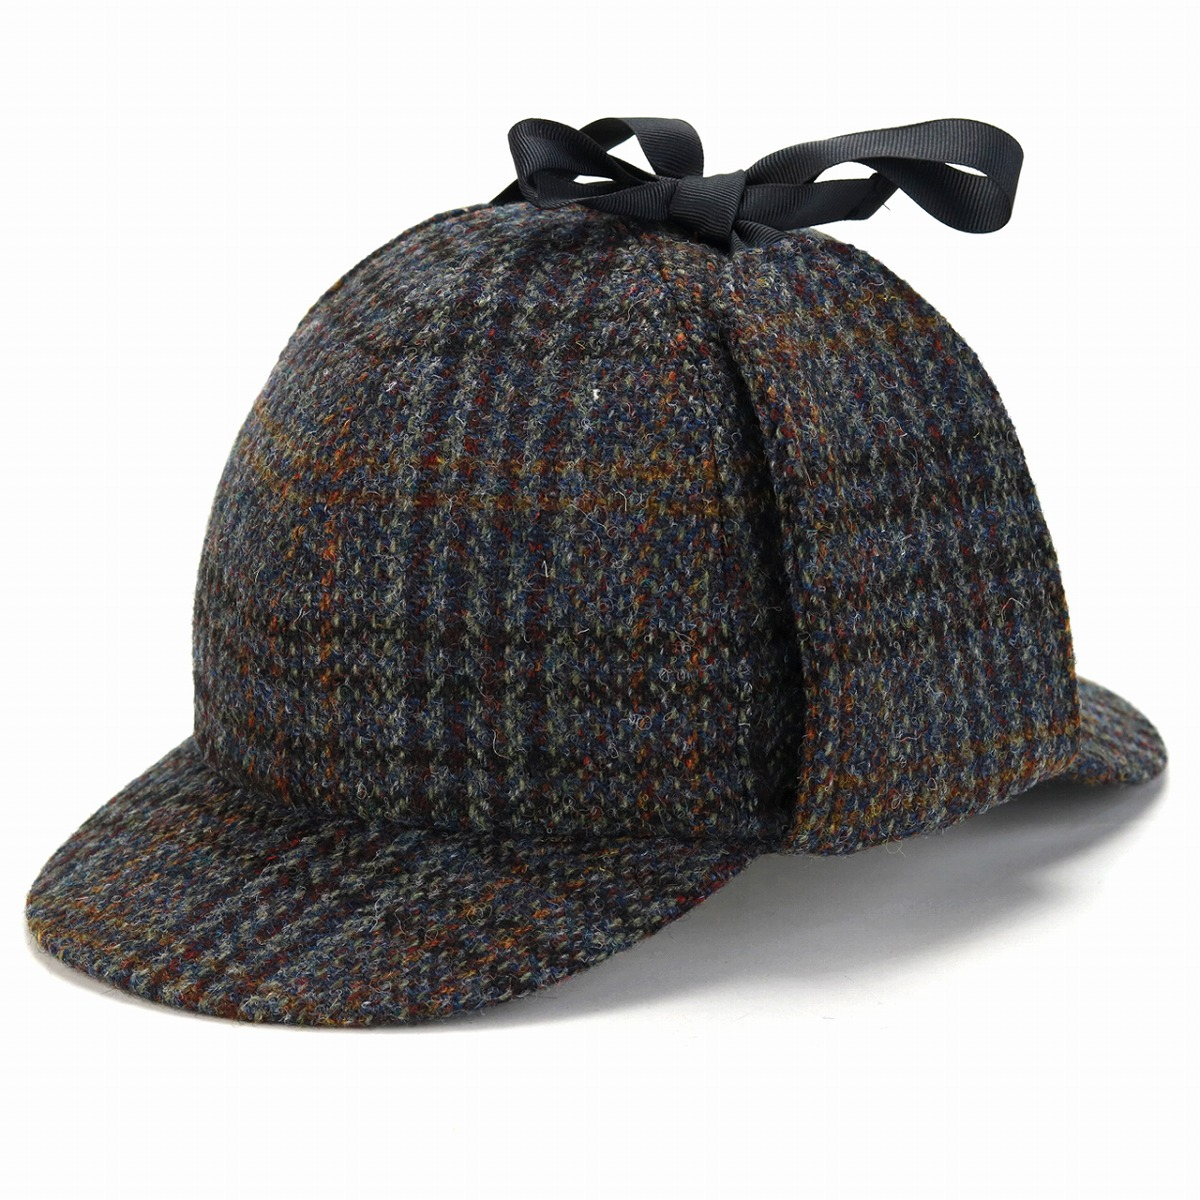 f5782e22a19 1303 model X HB310-A4 ディアストーカーカシュケット detective cap fashion   blue blue  system  deerstalker hat  man Christmas gift present made in Harris ...